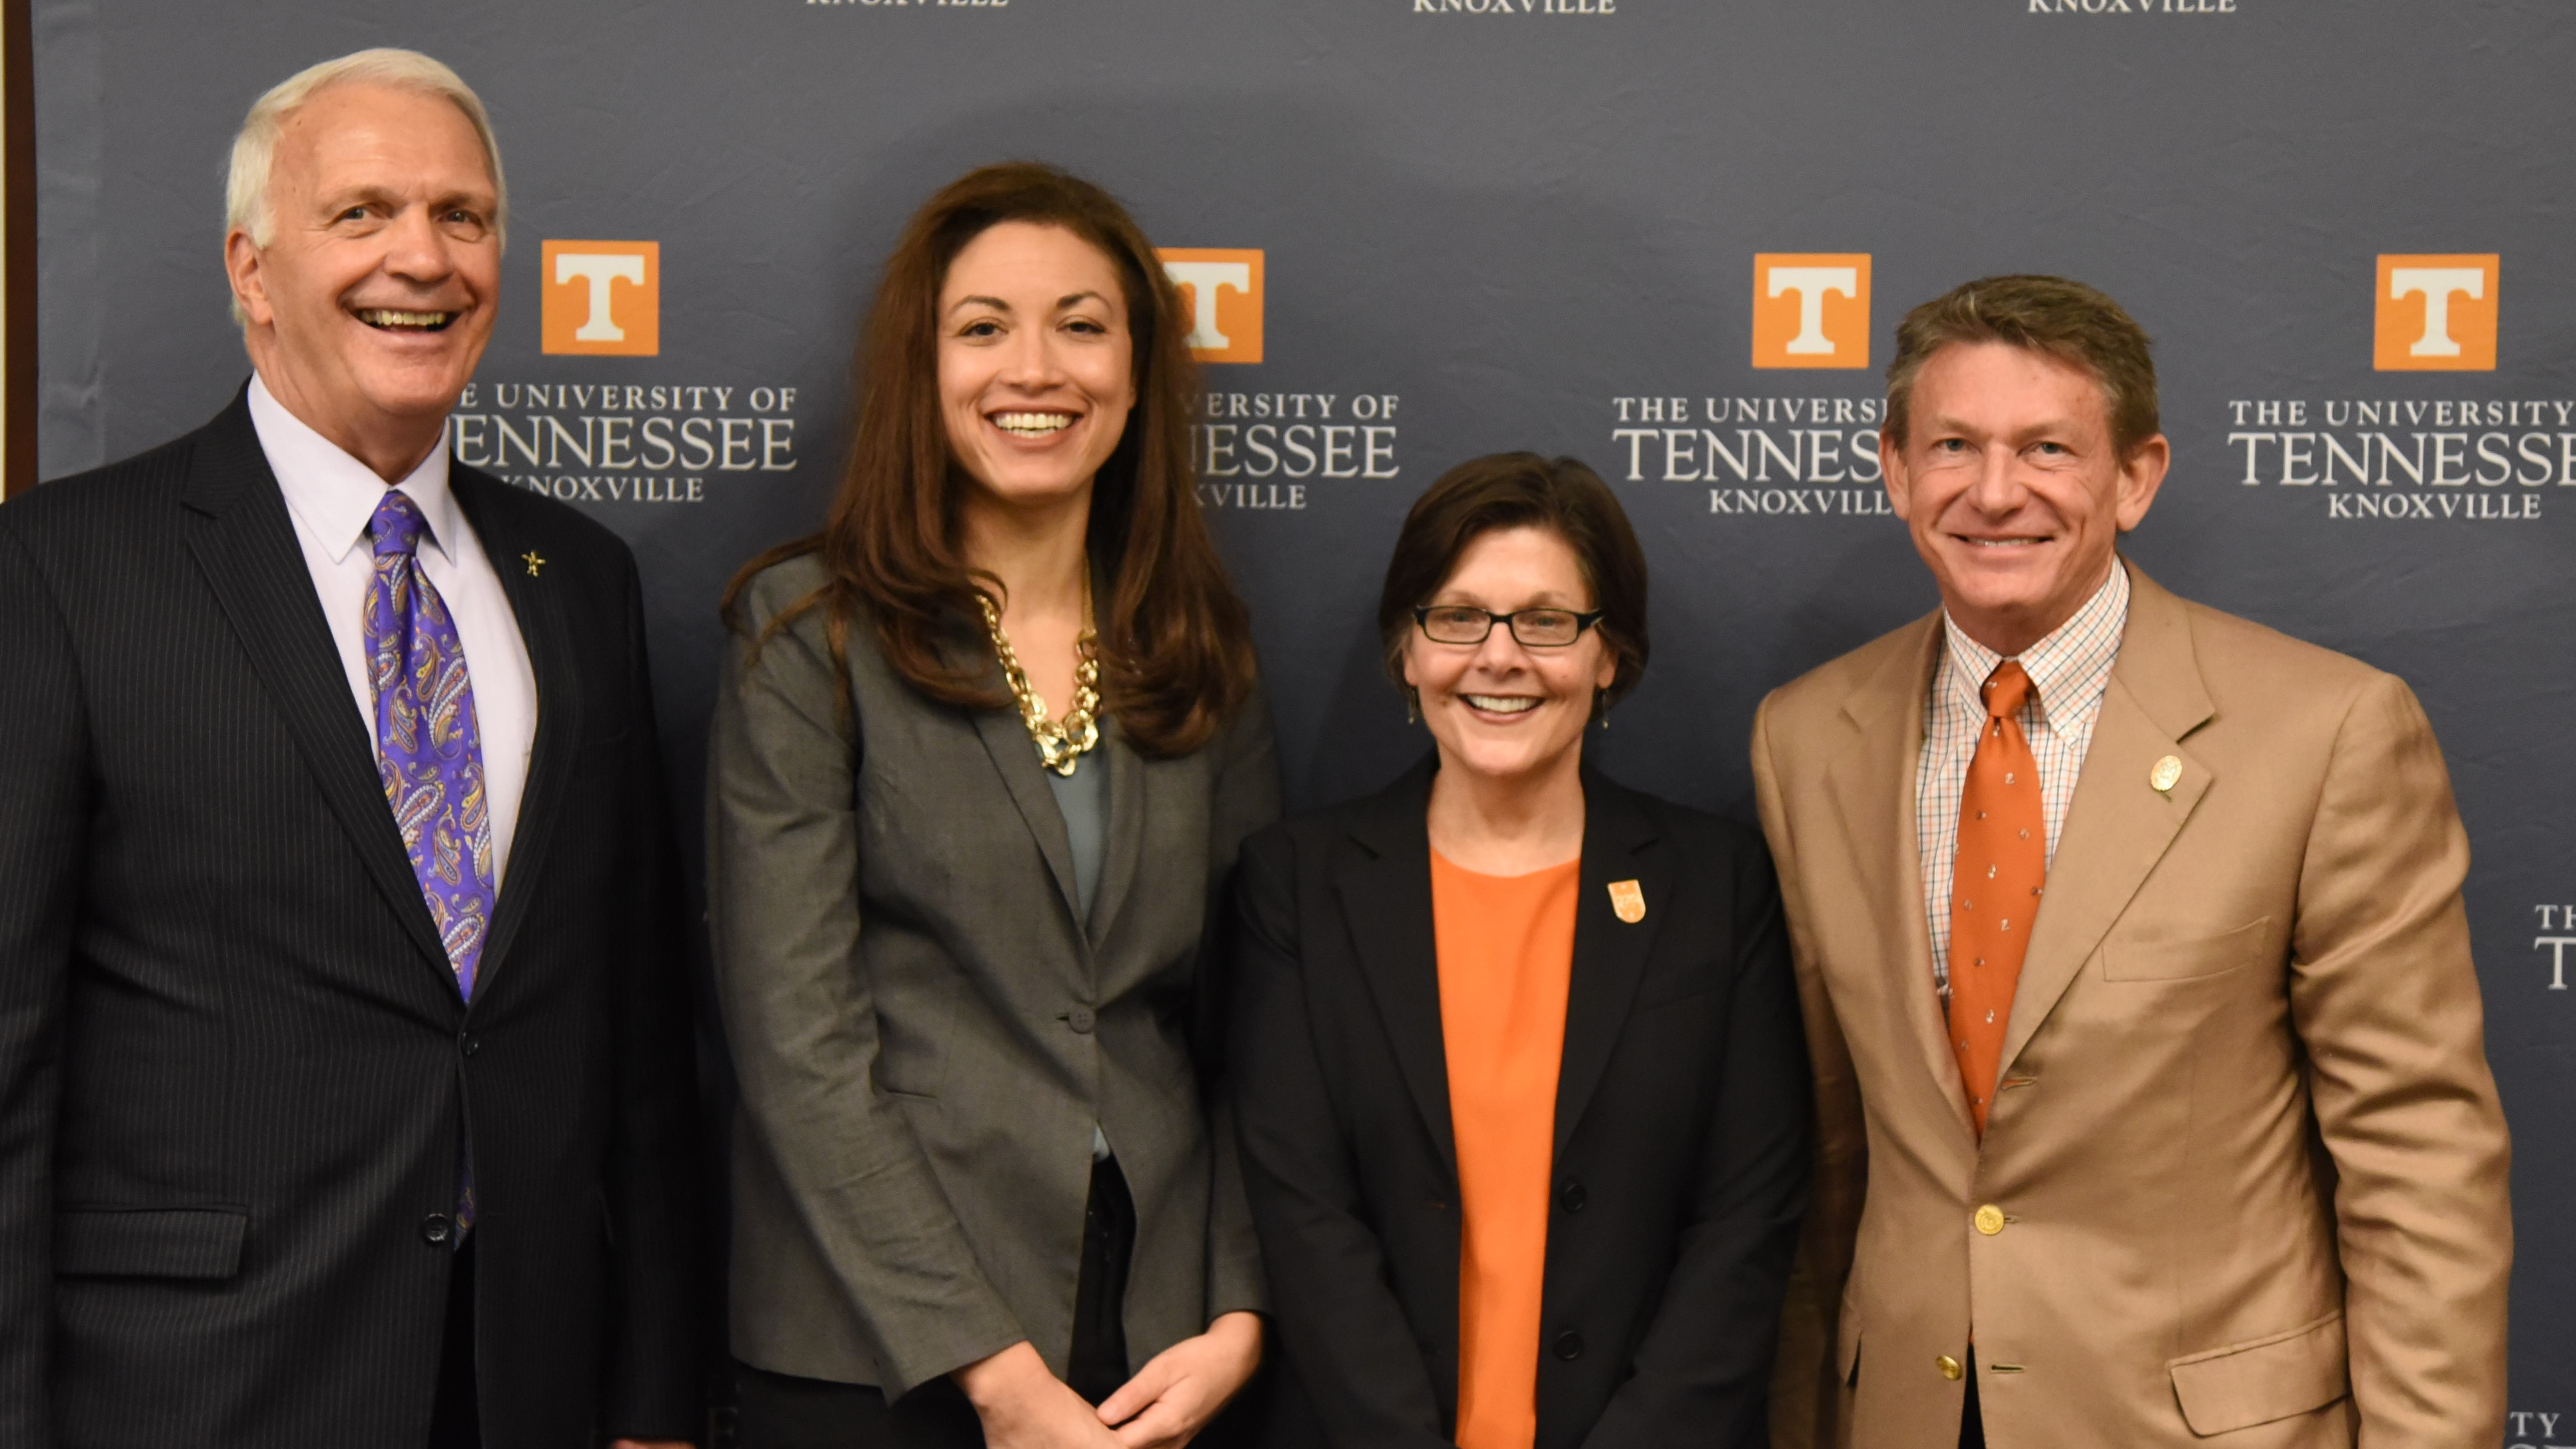 KCS Superintendent Bob Thomas, Tennessee Education Commissioner Penny Schwinn, dean of the UTK College of Education, Health and Human Sciences Ellen McIntyre and interim UT System President Randy Boyd announced the Grow Your Own program on Monday, March 2, 2020.